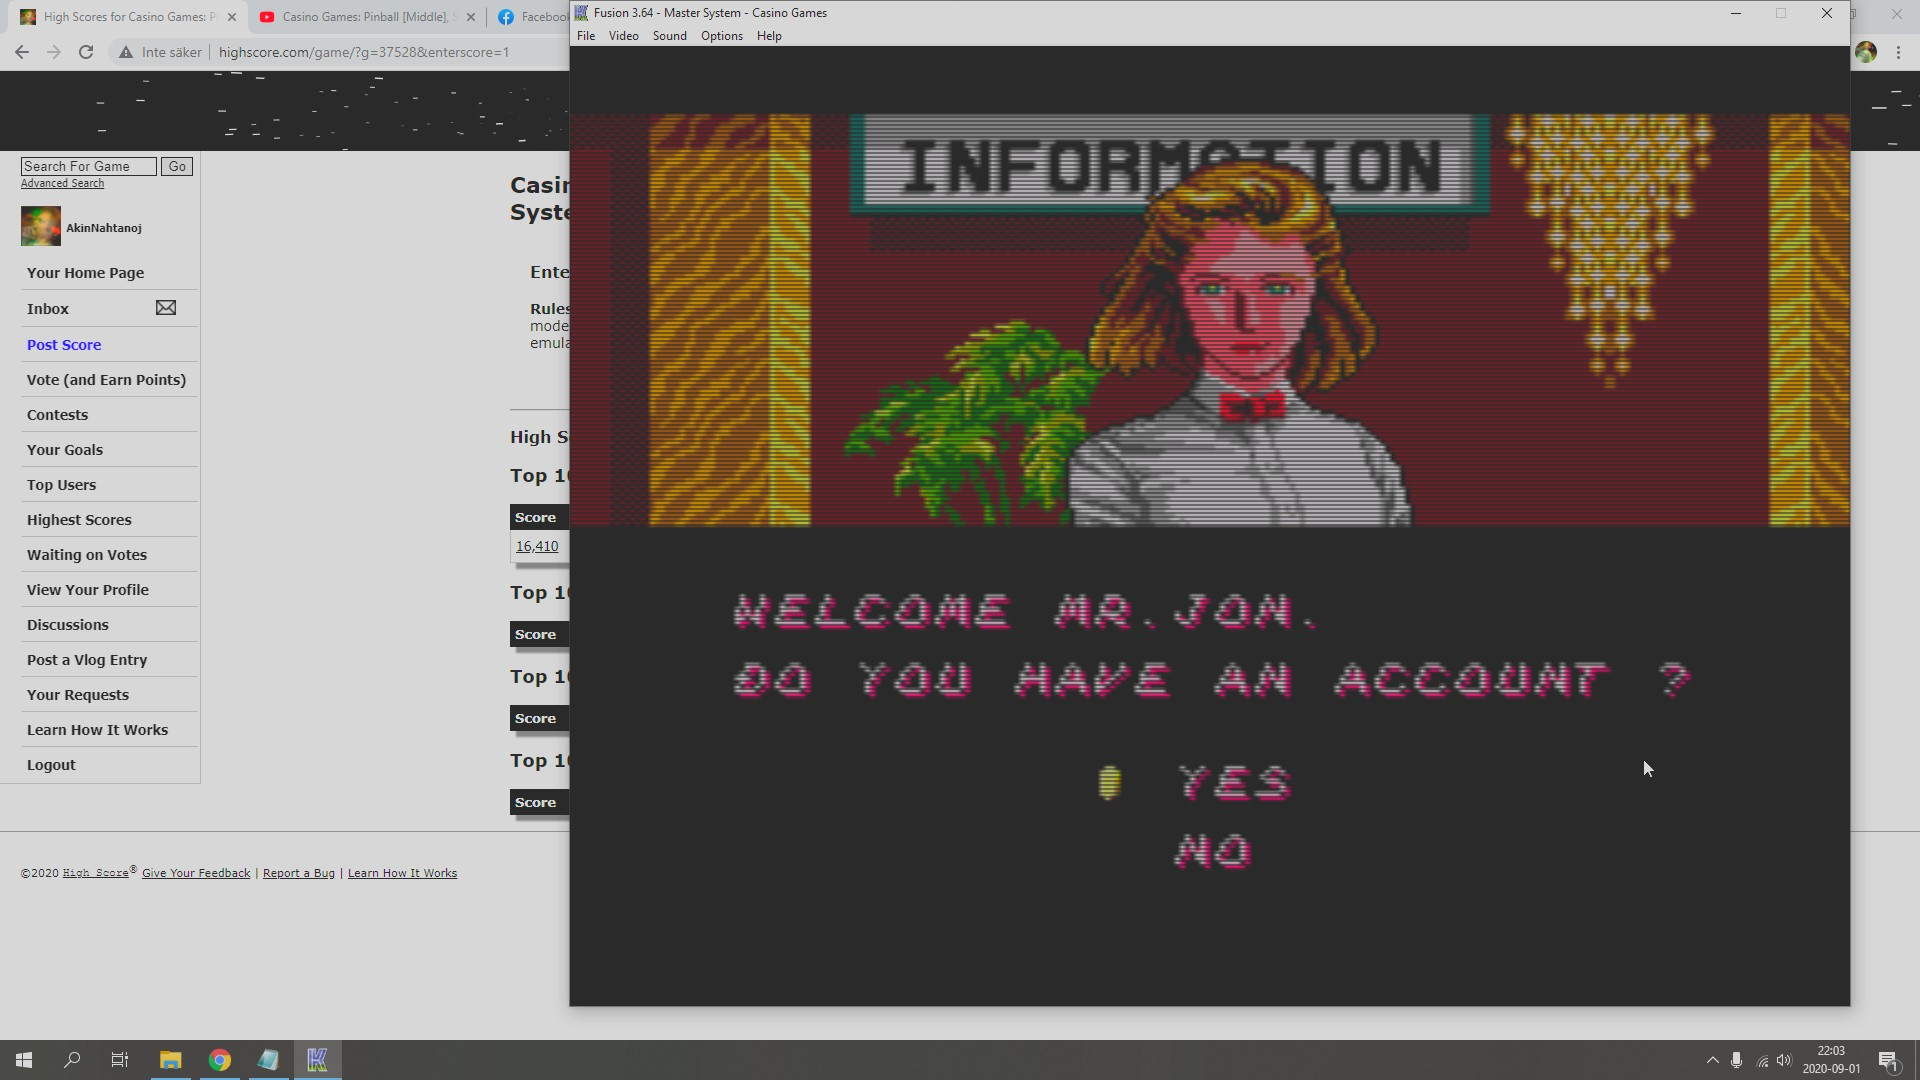 AkinNahtanoj: Casino Games: Poker [Opponent Dick] [Dollars Whenever You Stop Playing] (Sega Master System Emulated) 805 points on 2020-09-01 15:57:29